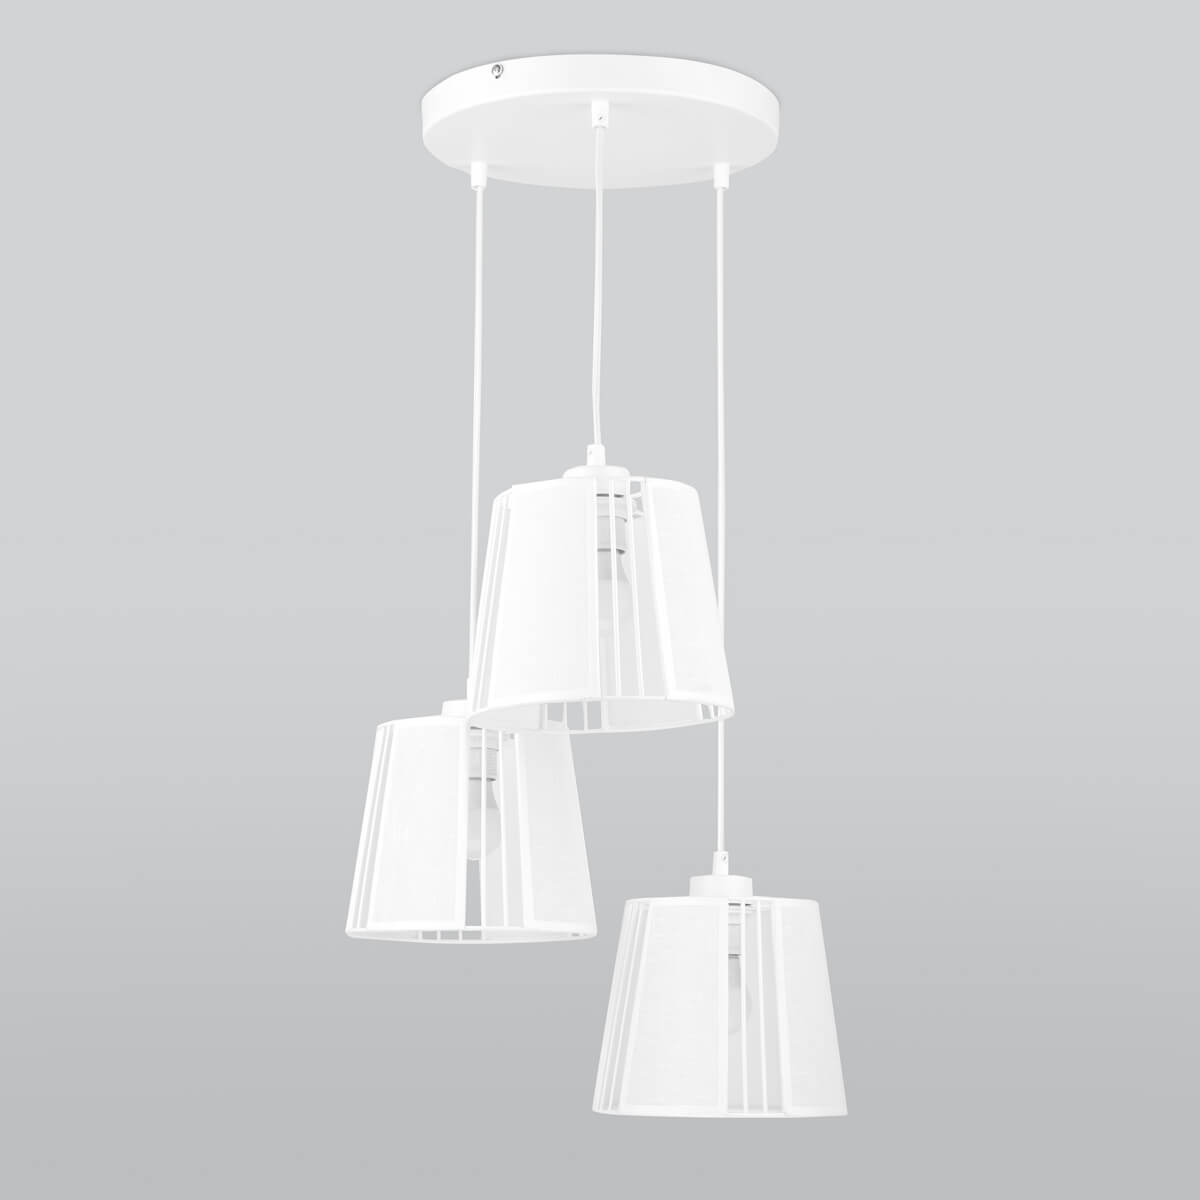 Светильник TK Lighting 2574 Carmen White Carmen White недорого